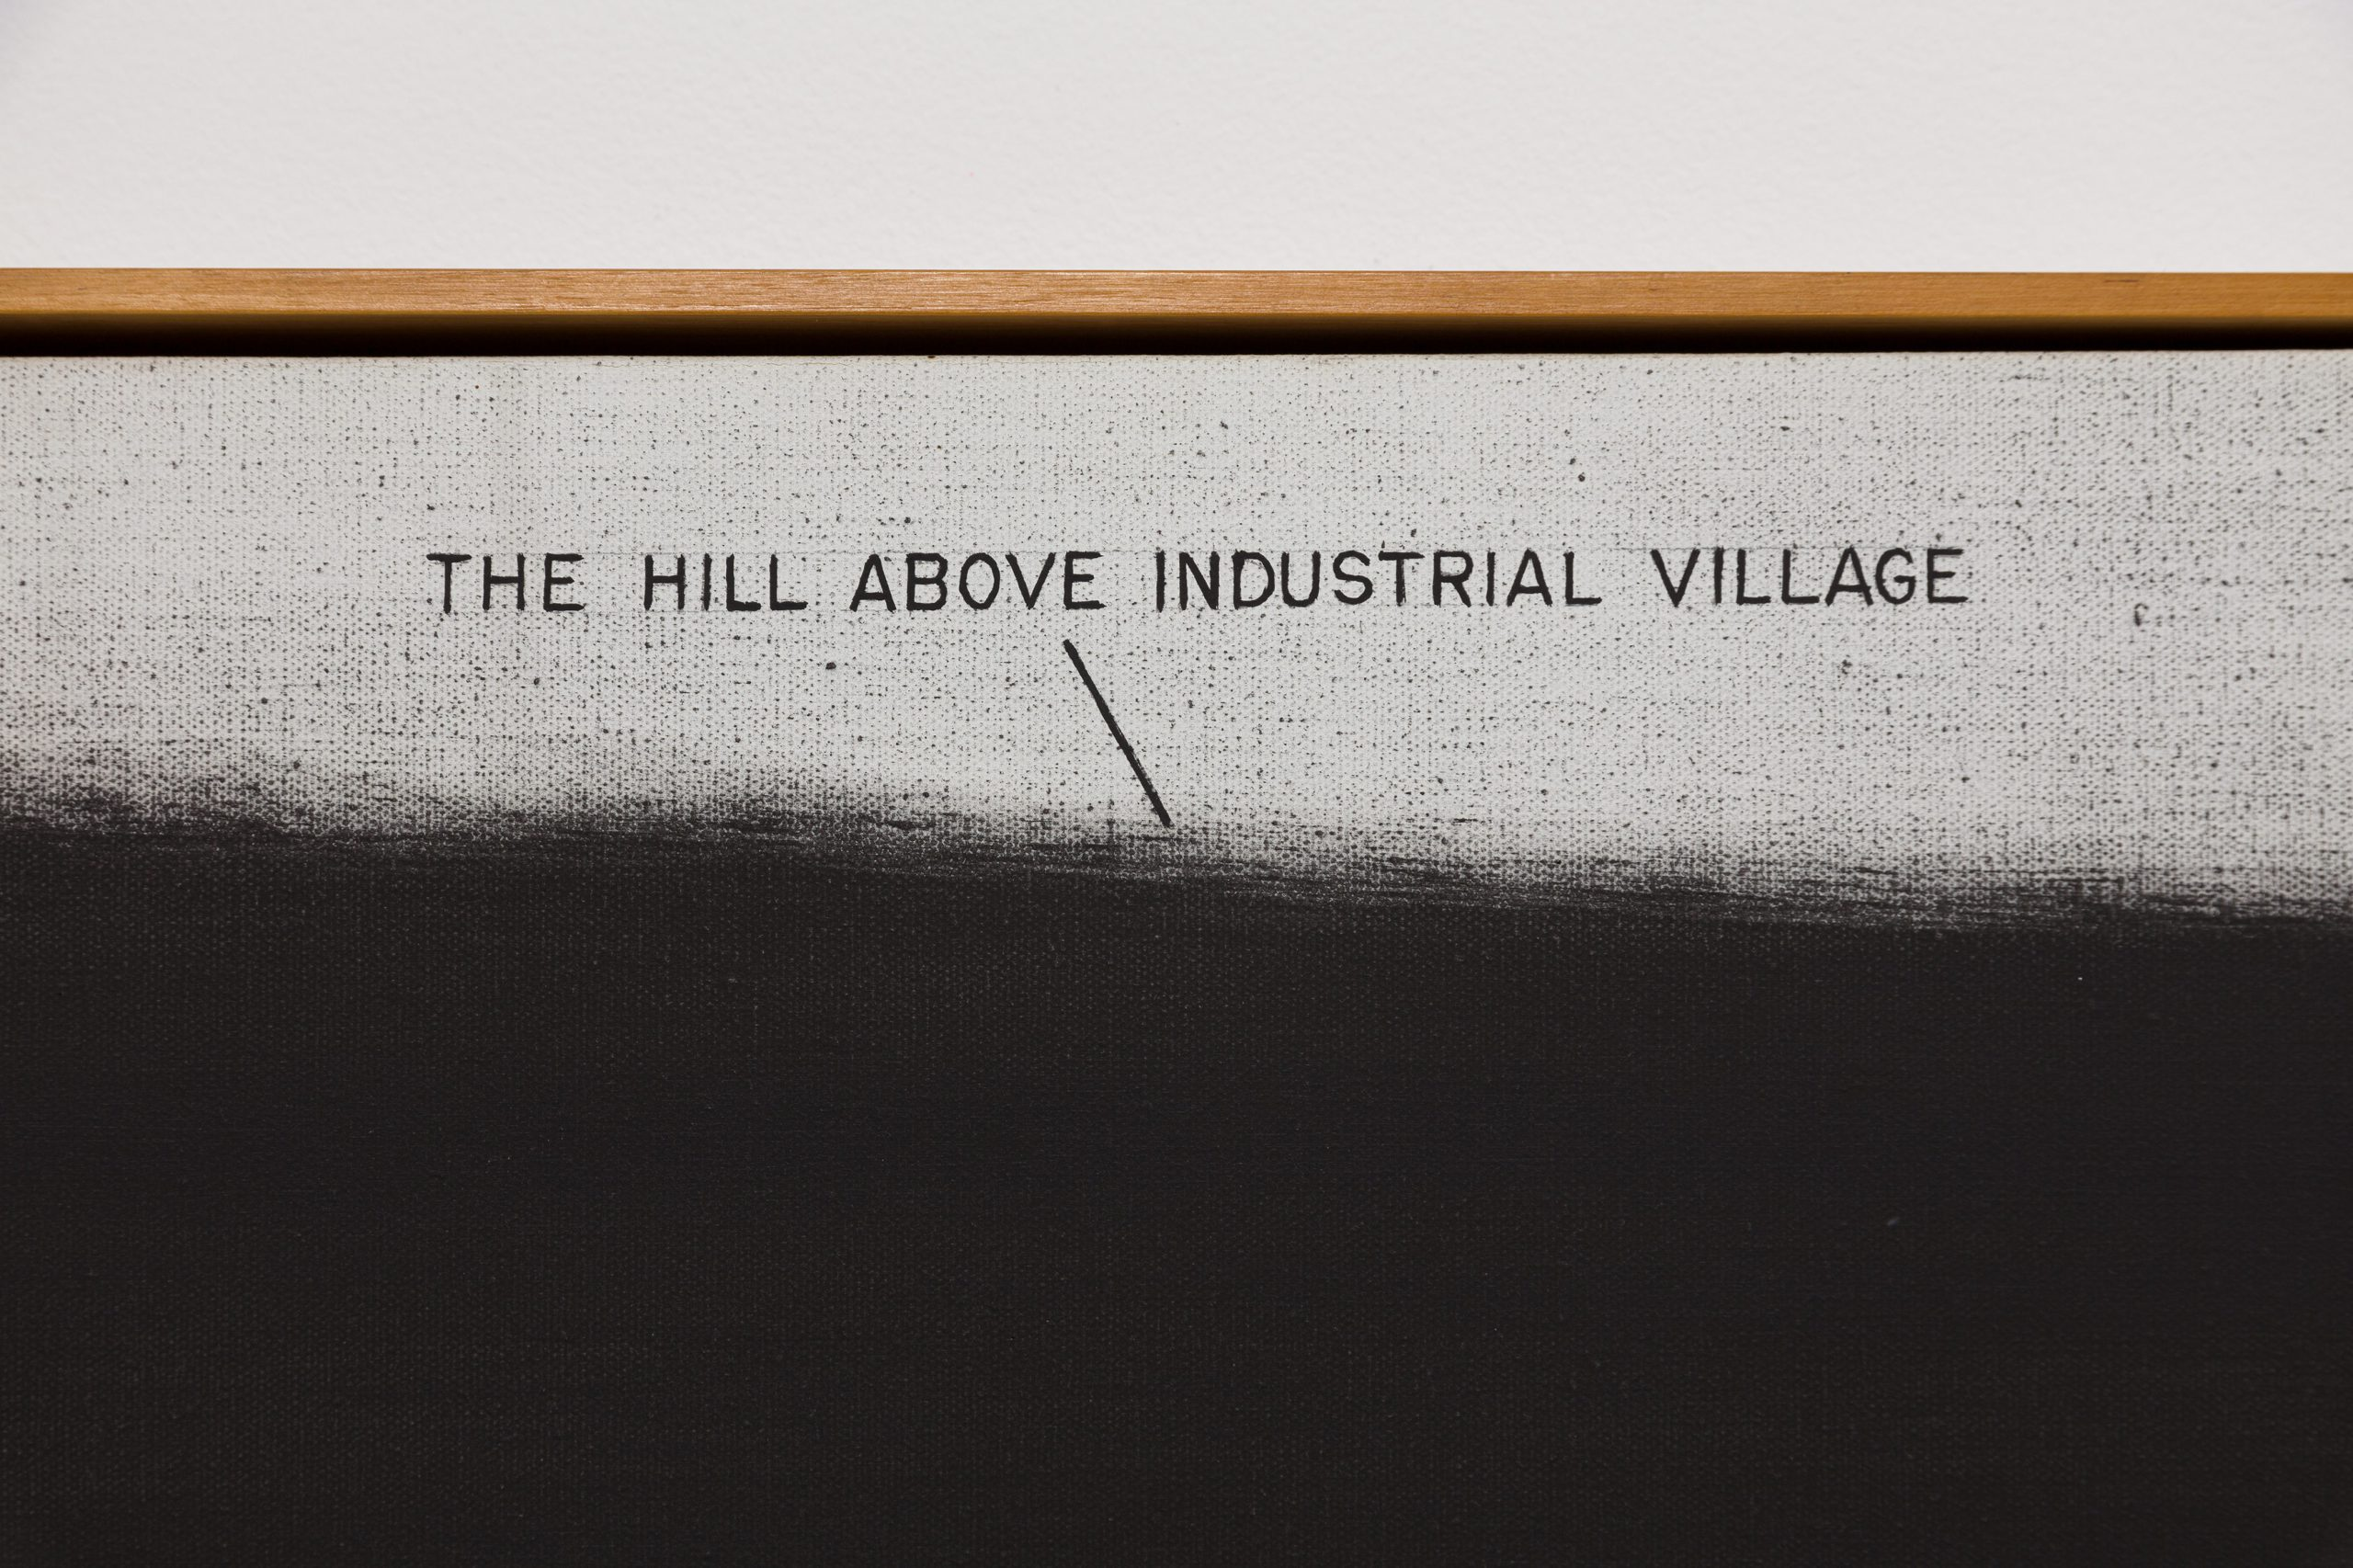 ruscha-Industrial-Village-and-Its-Hill-ER13-2-D